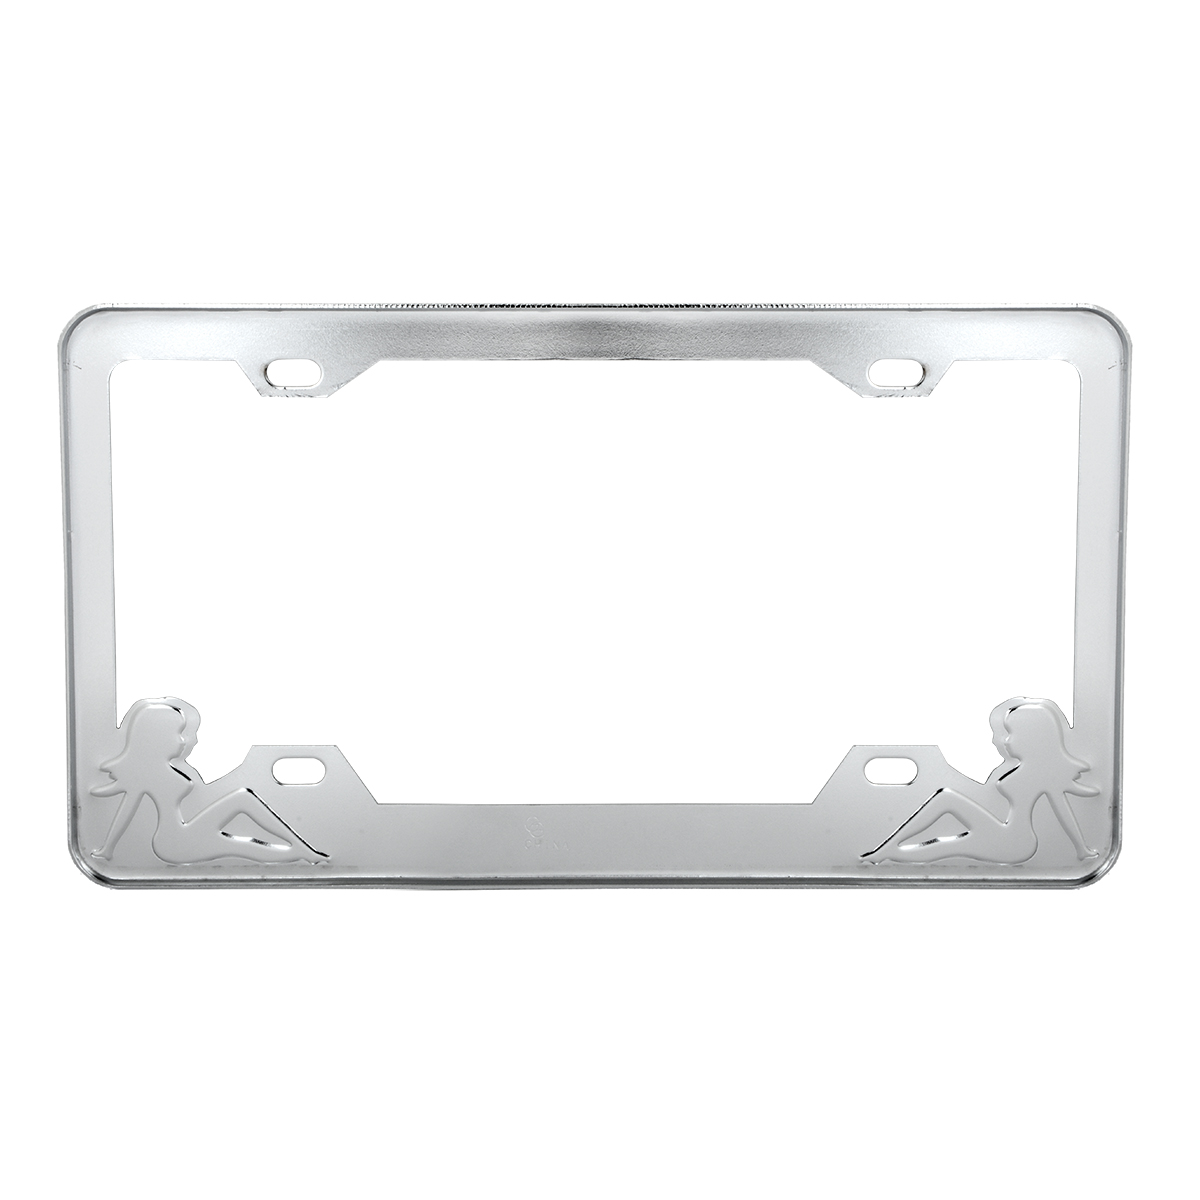 Chrome Plated Steel License Plate Frame with Black ColorSitting Ladies - Back View